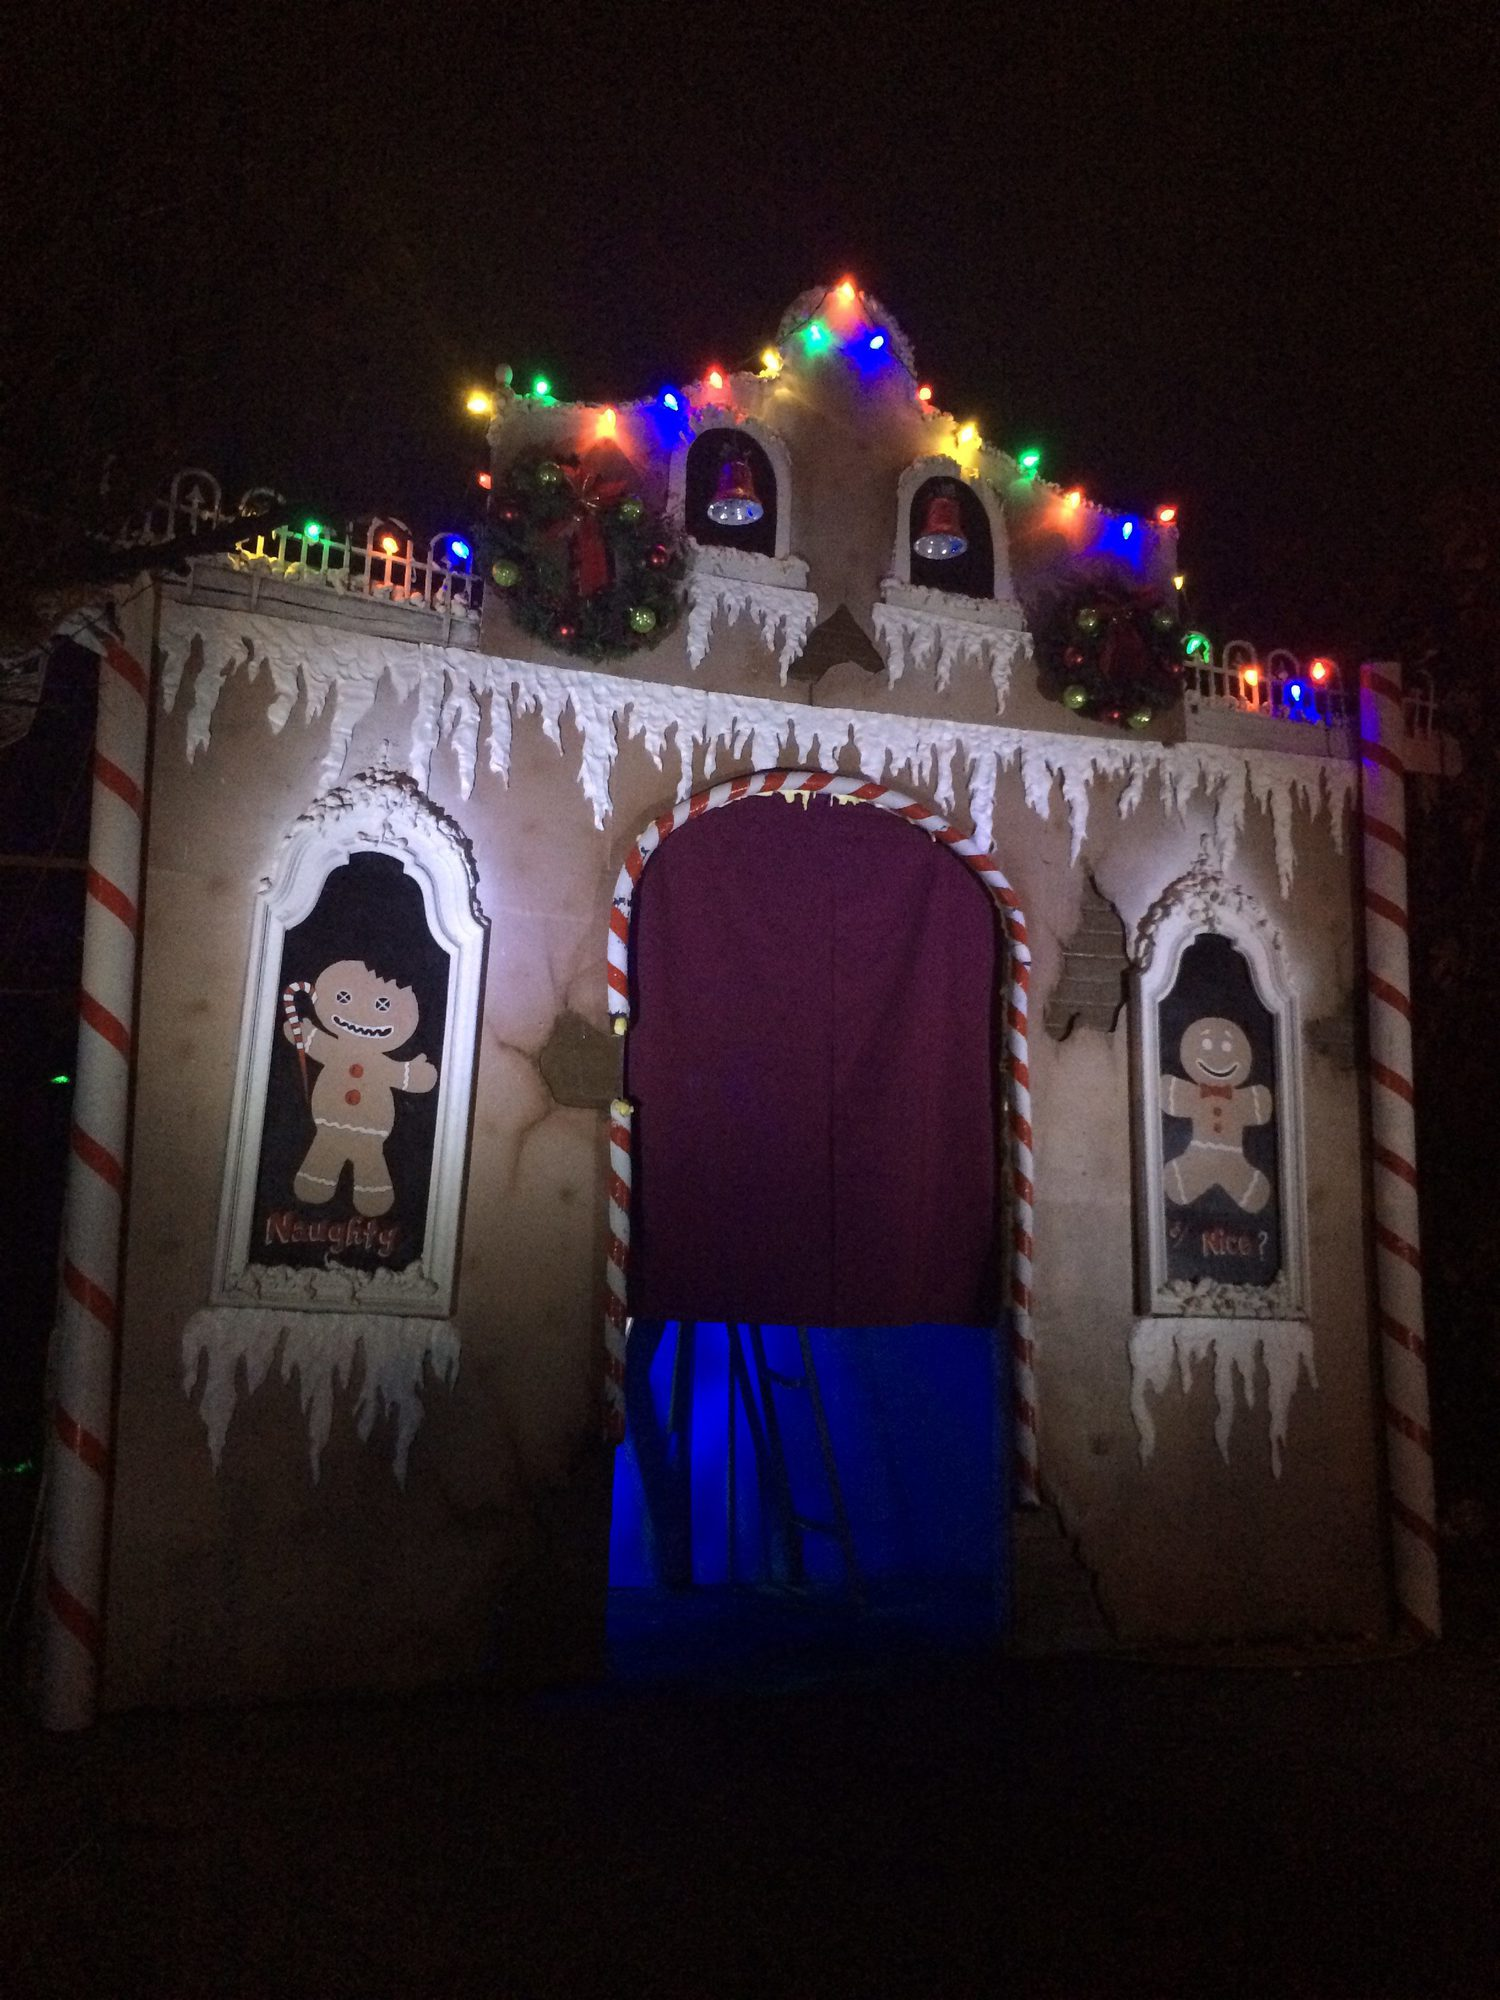 vandal image productions r and k haunt props whittier gingerdead krampus maze xmas haunted house home